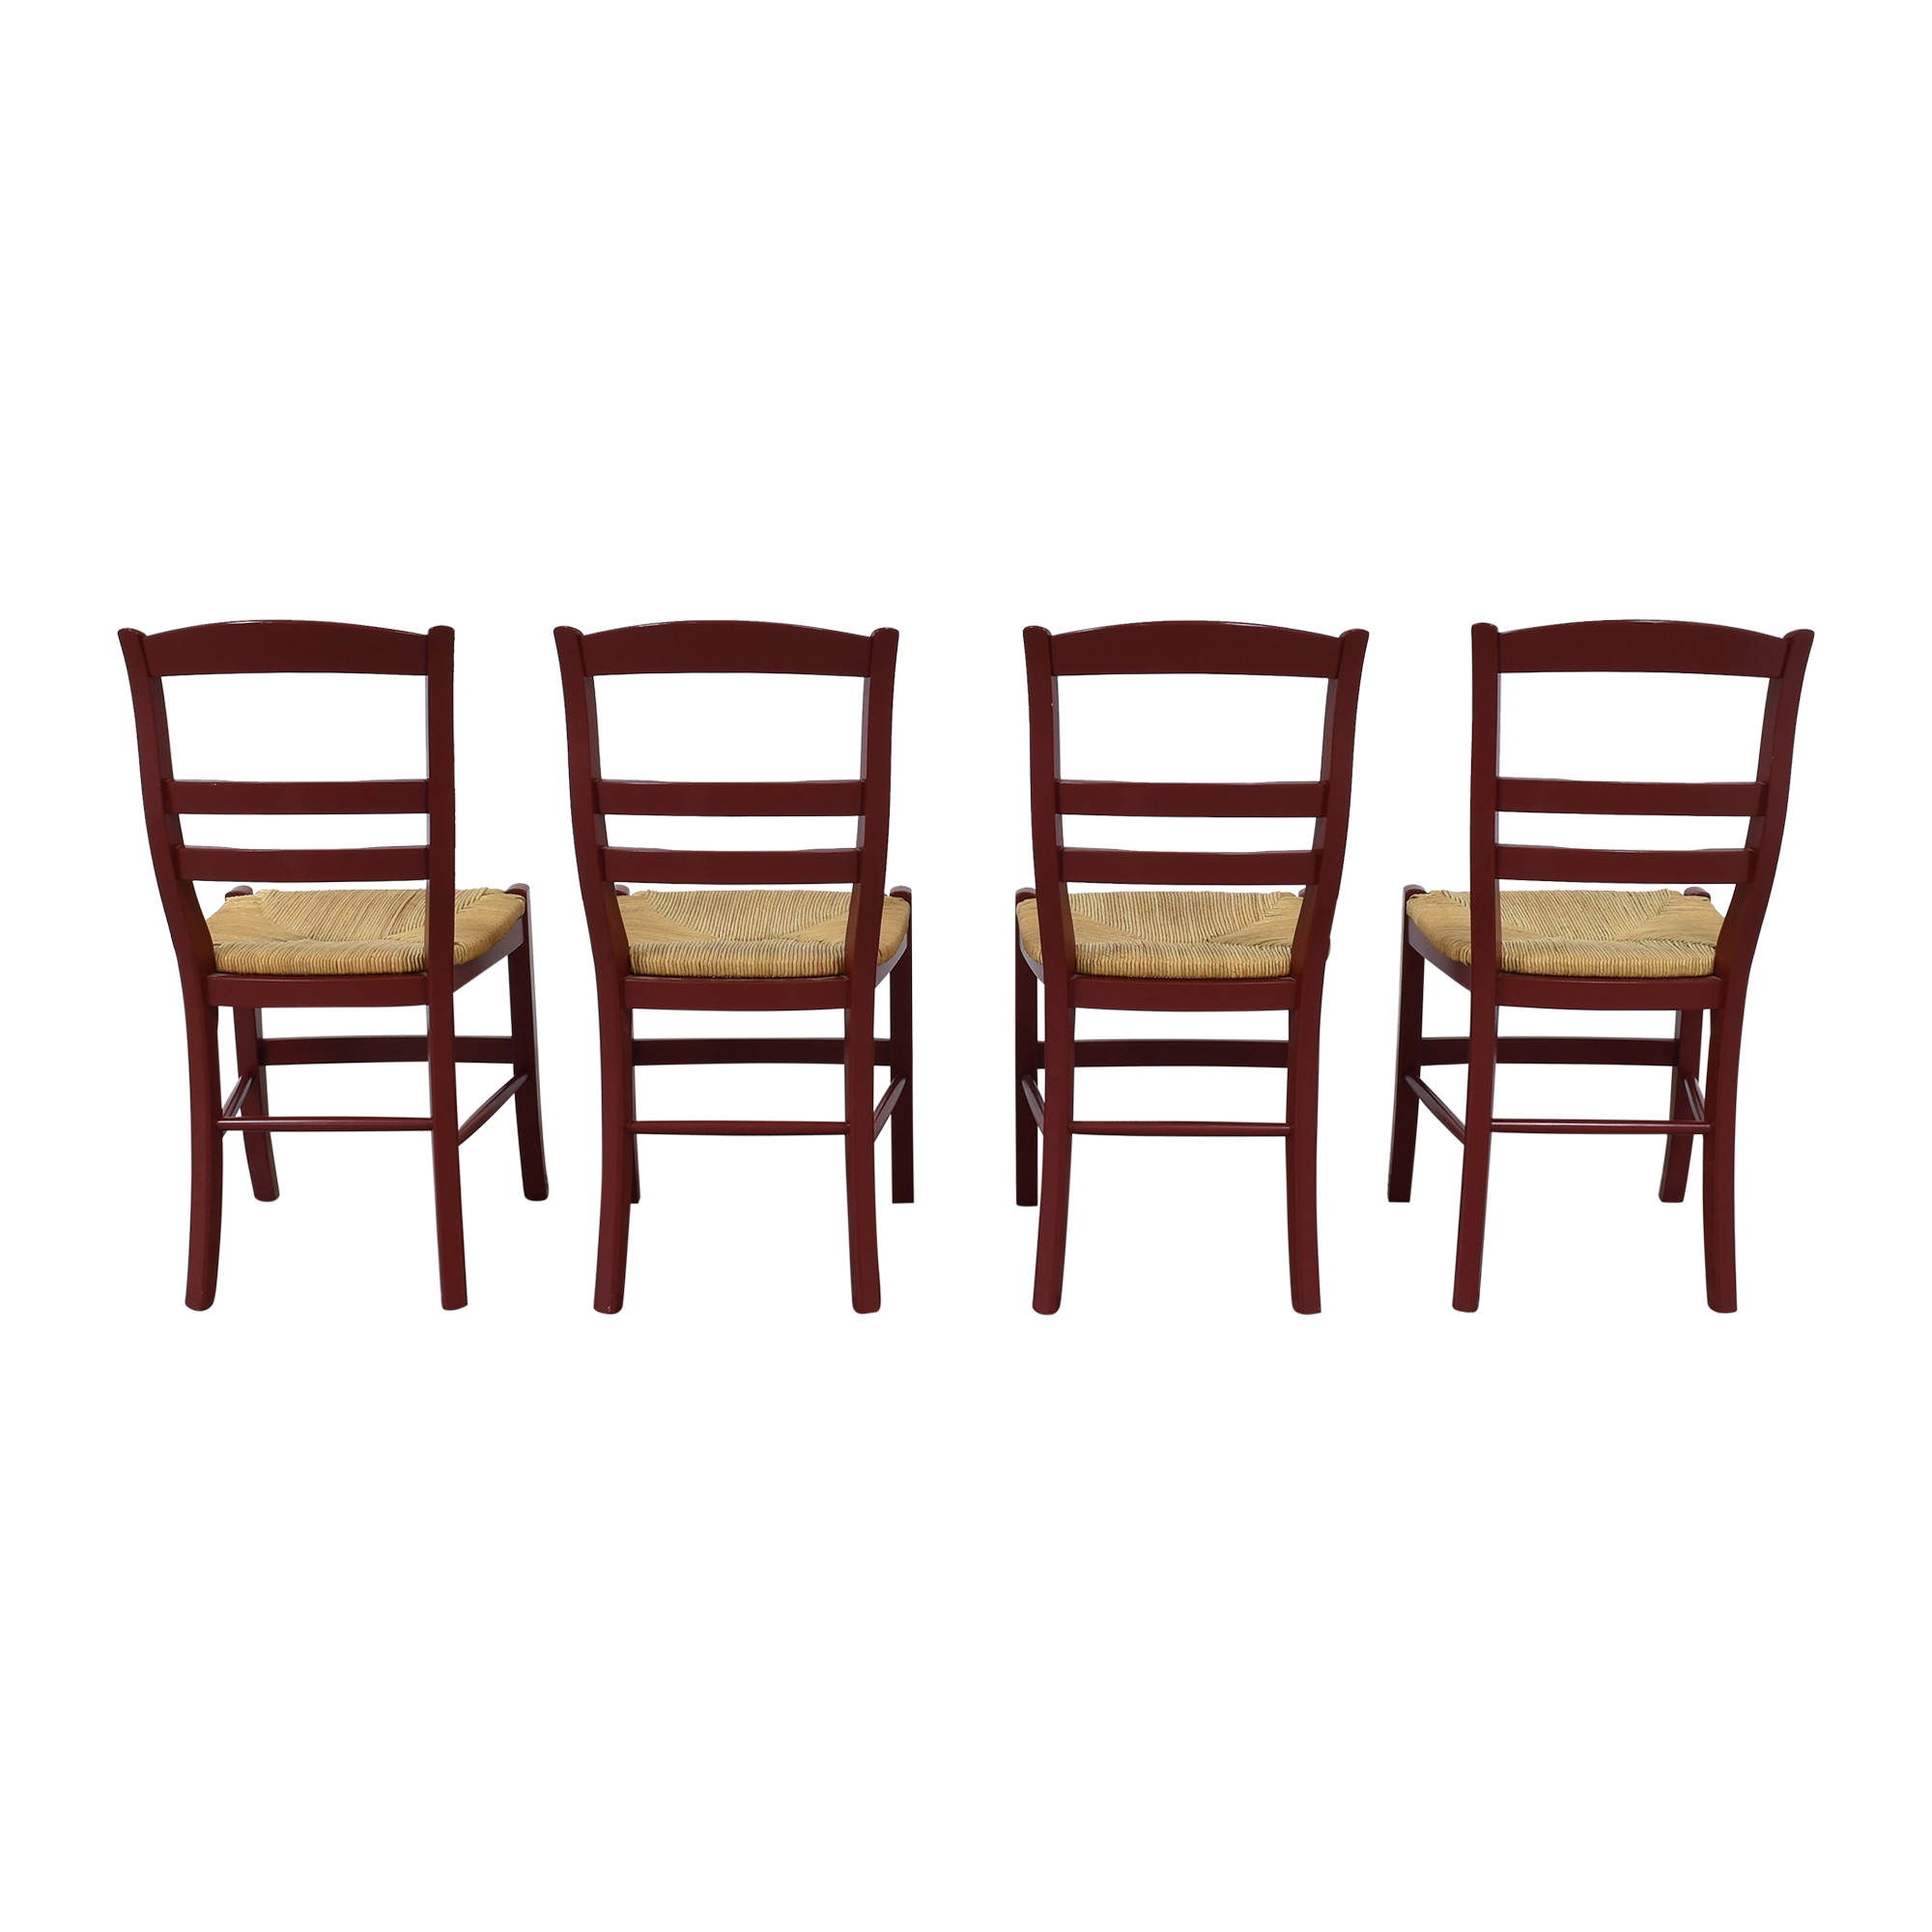 Pottery Barn Pottery Barn Isabella Dining Chairs Brown / Red